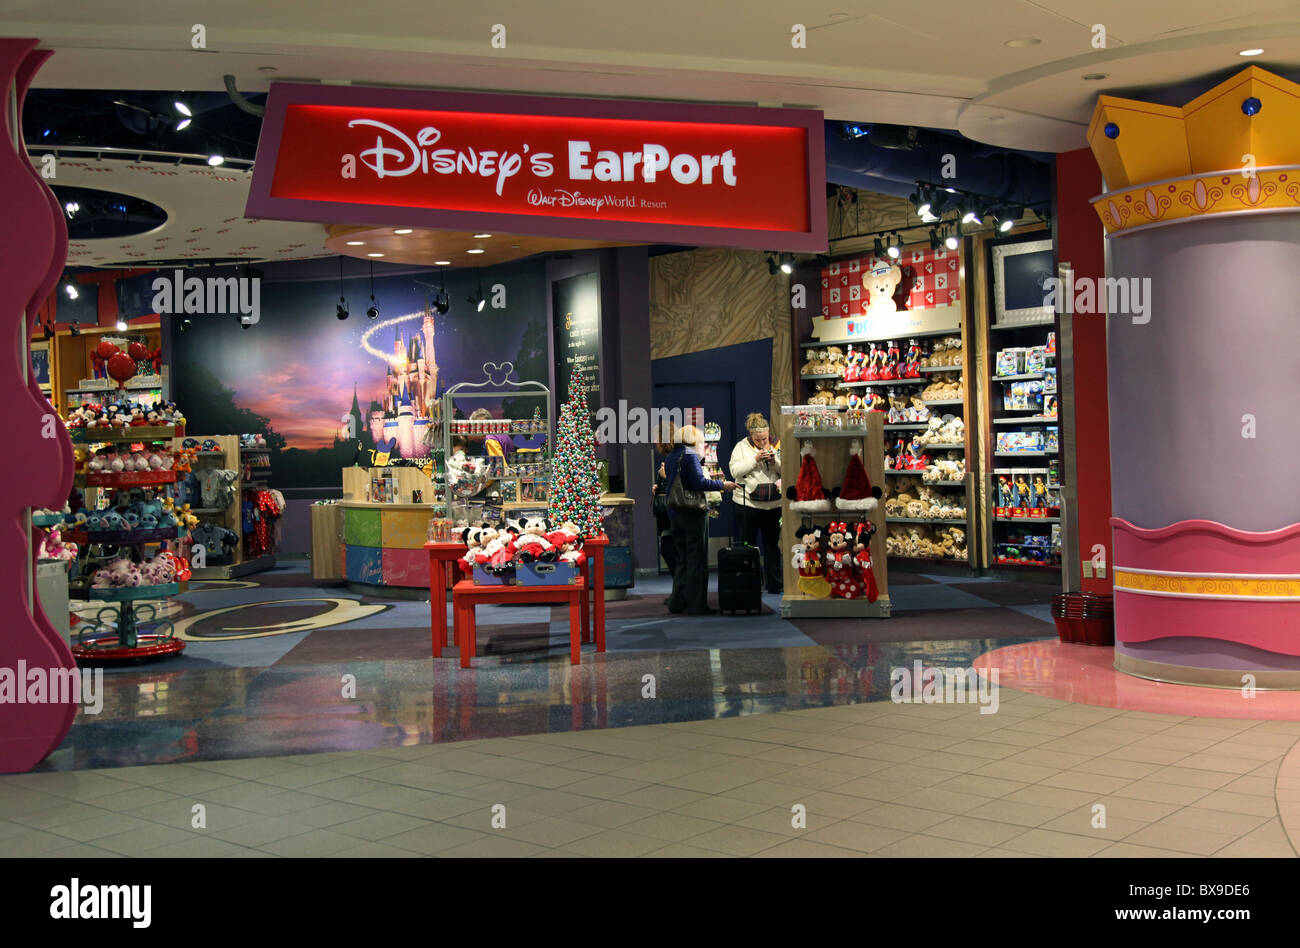 the disney earport store